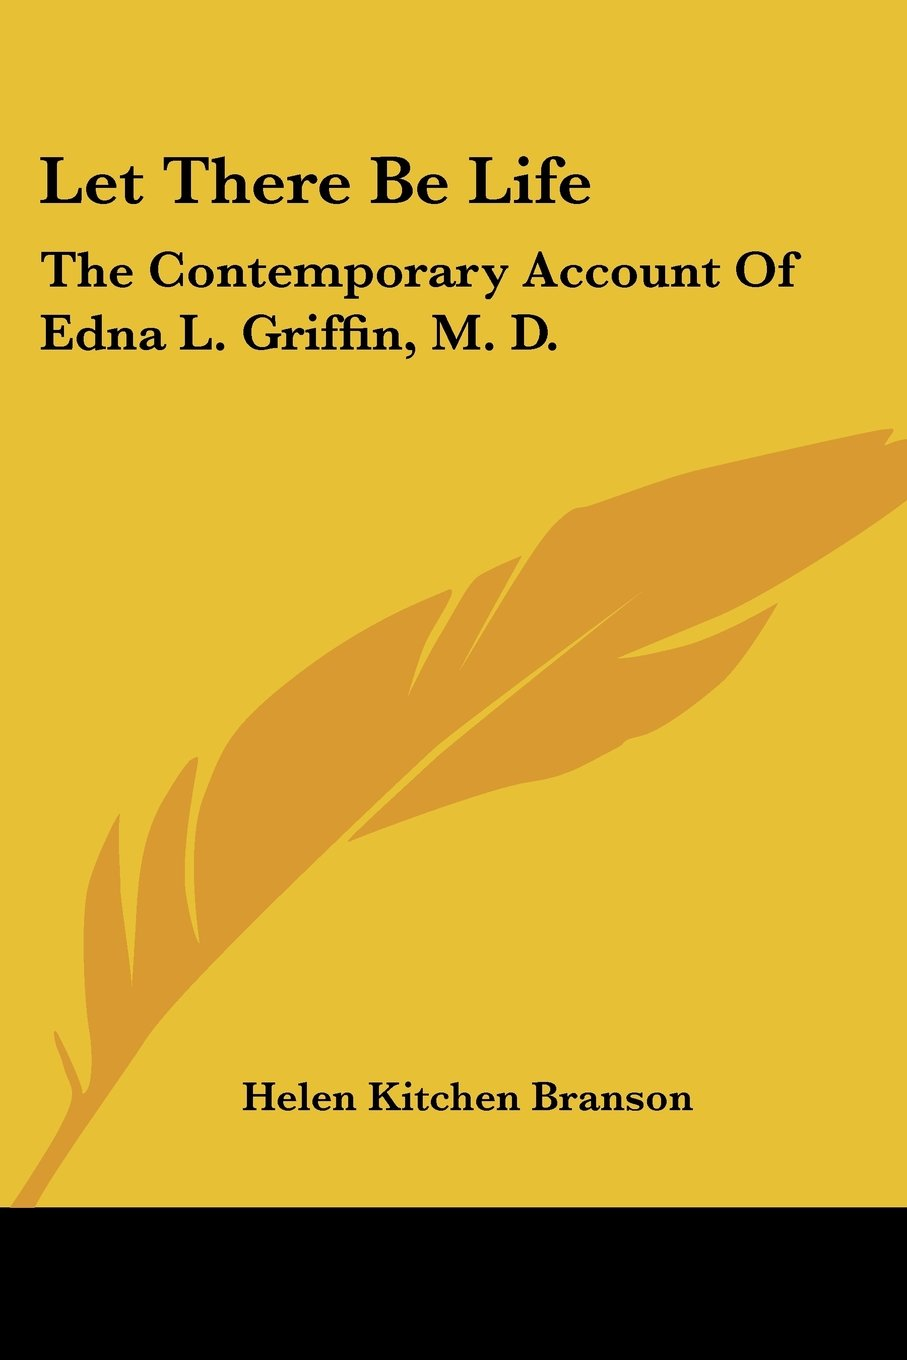 Let There Be Life: The Contemporary Account of Edna L. Griffin, M. D. pdf